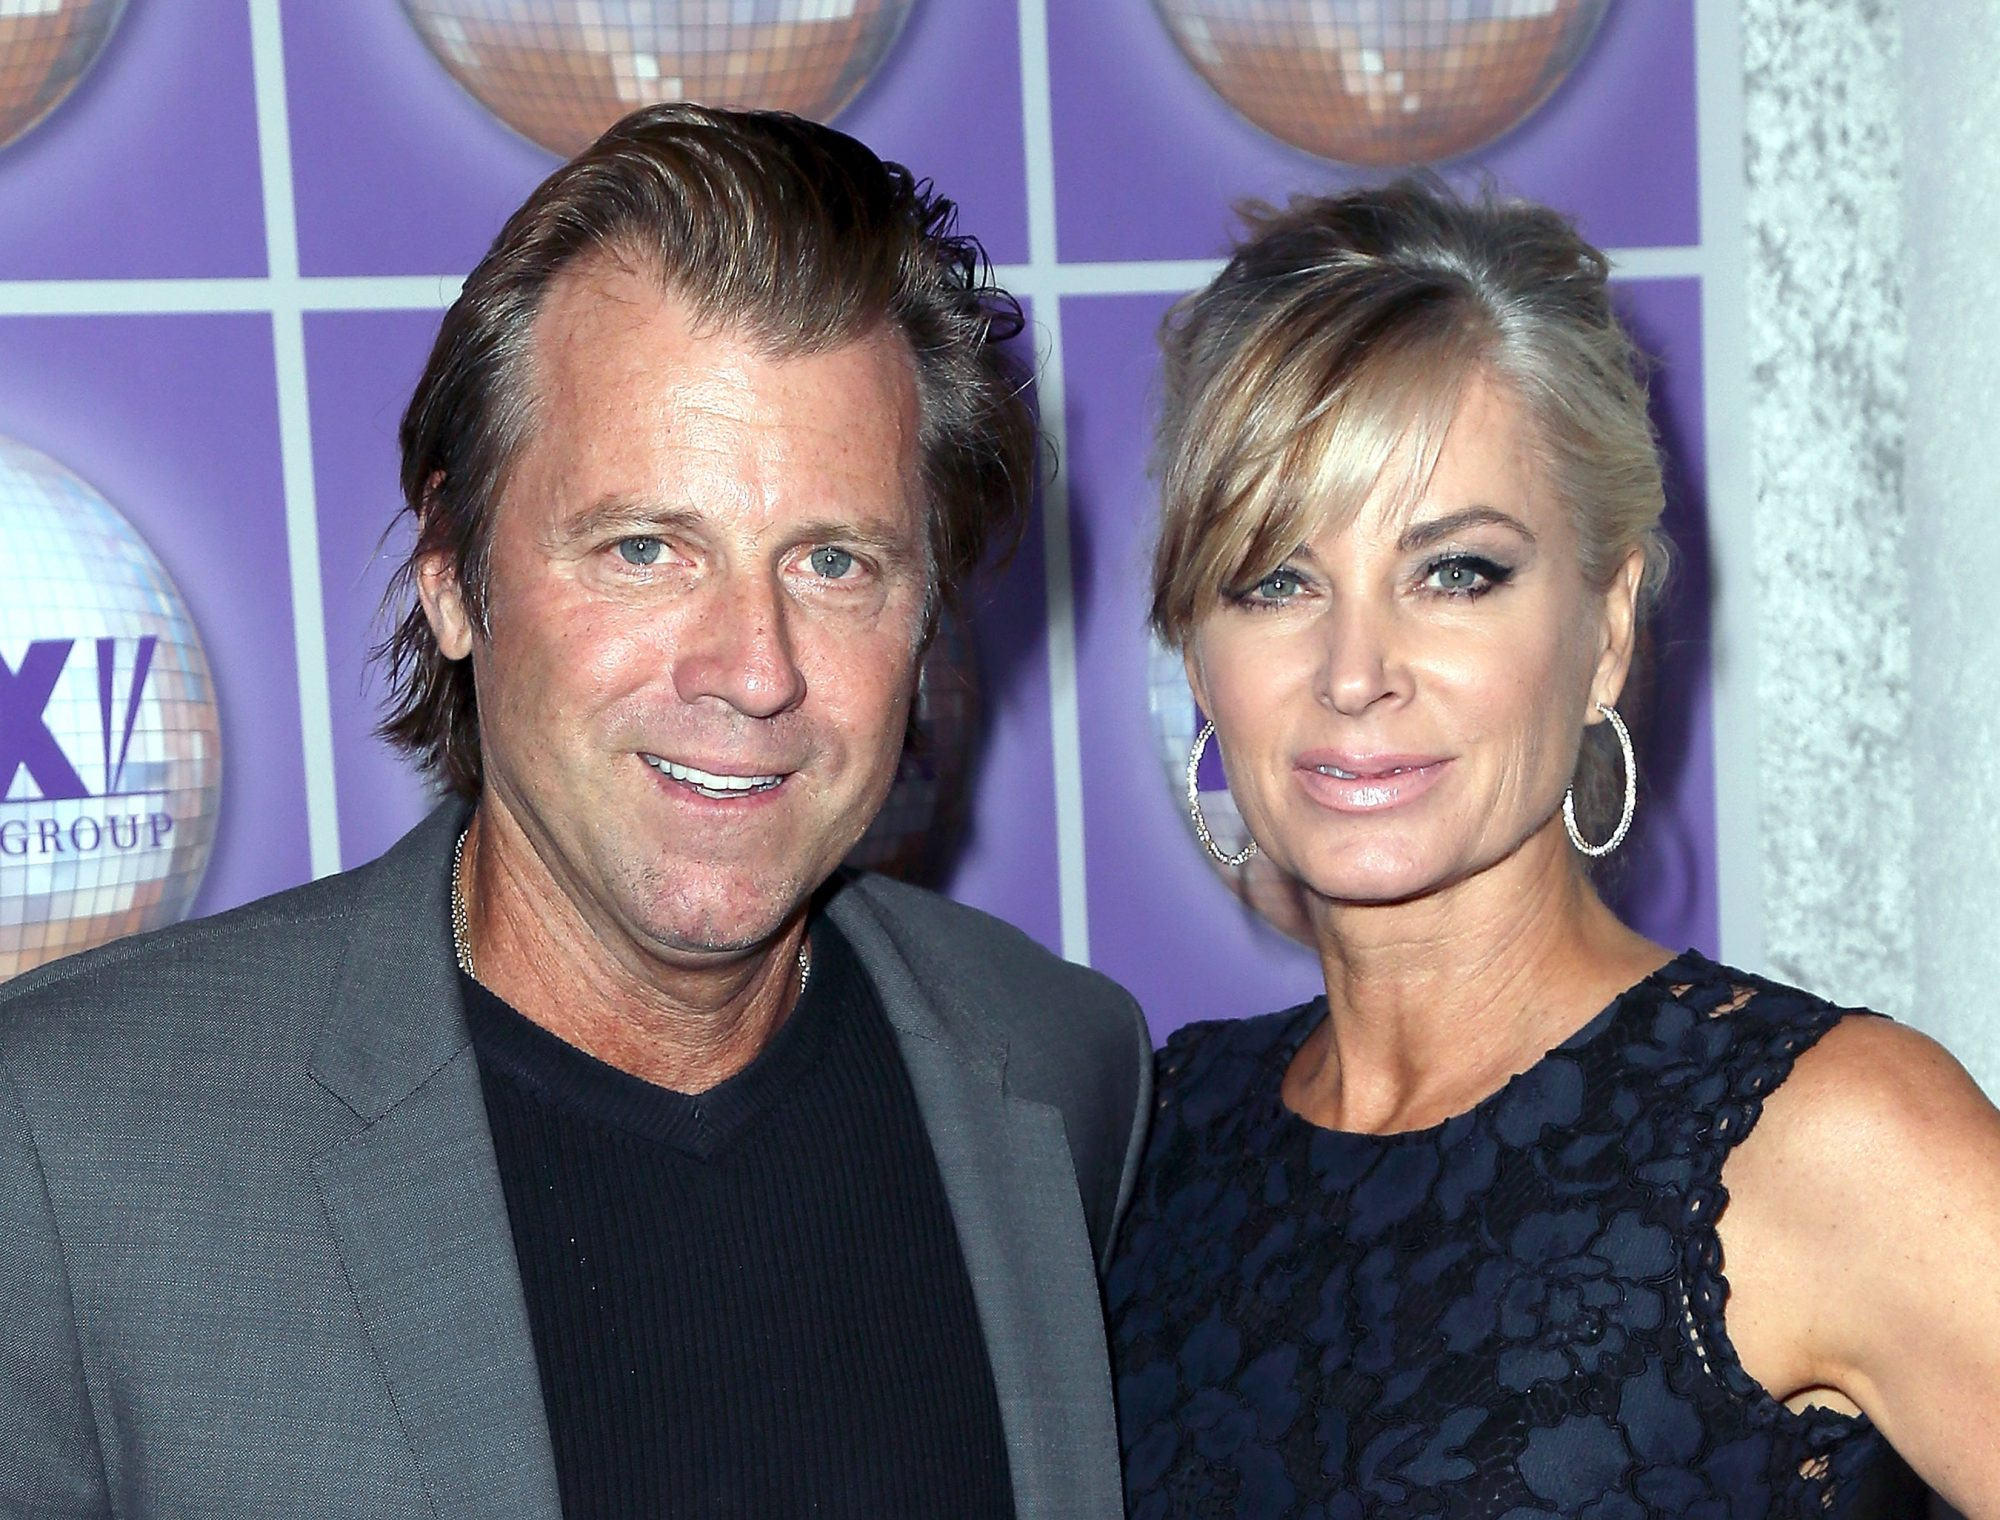 Vincent Van Patten and Eileen Davidson